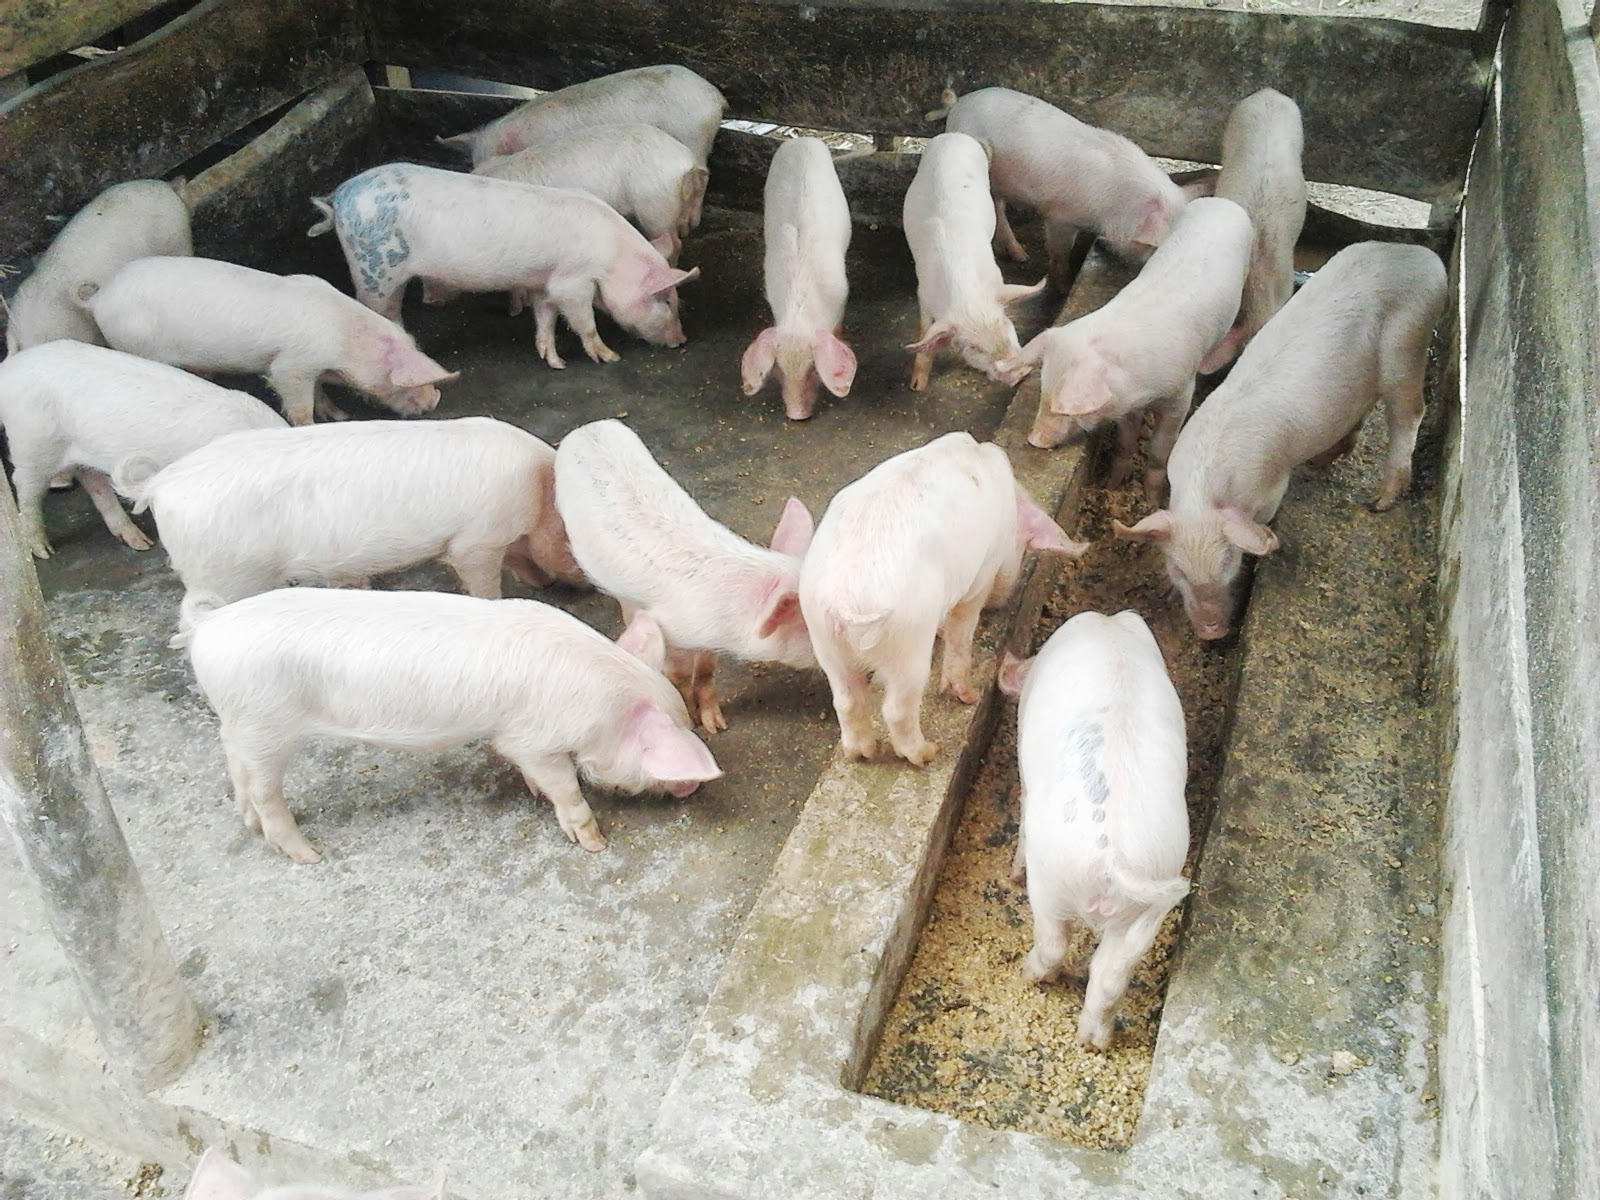 information on pig farming A viva report by juliet gellatley, bsc zoology, founder & director, viva published 2016 by juliet gellatley, founder & director, viva with additions by claire palmer, viva juliet@vivaorguk wwwfacebookcom/julietgellatley cop.